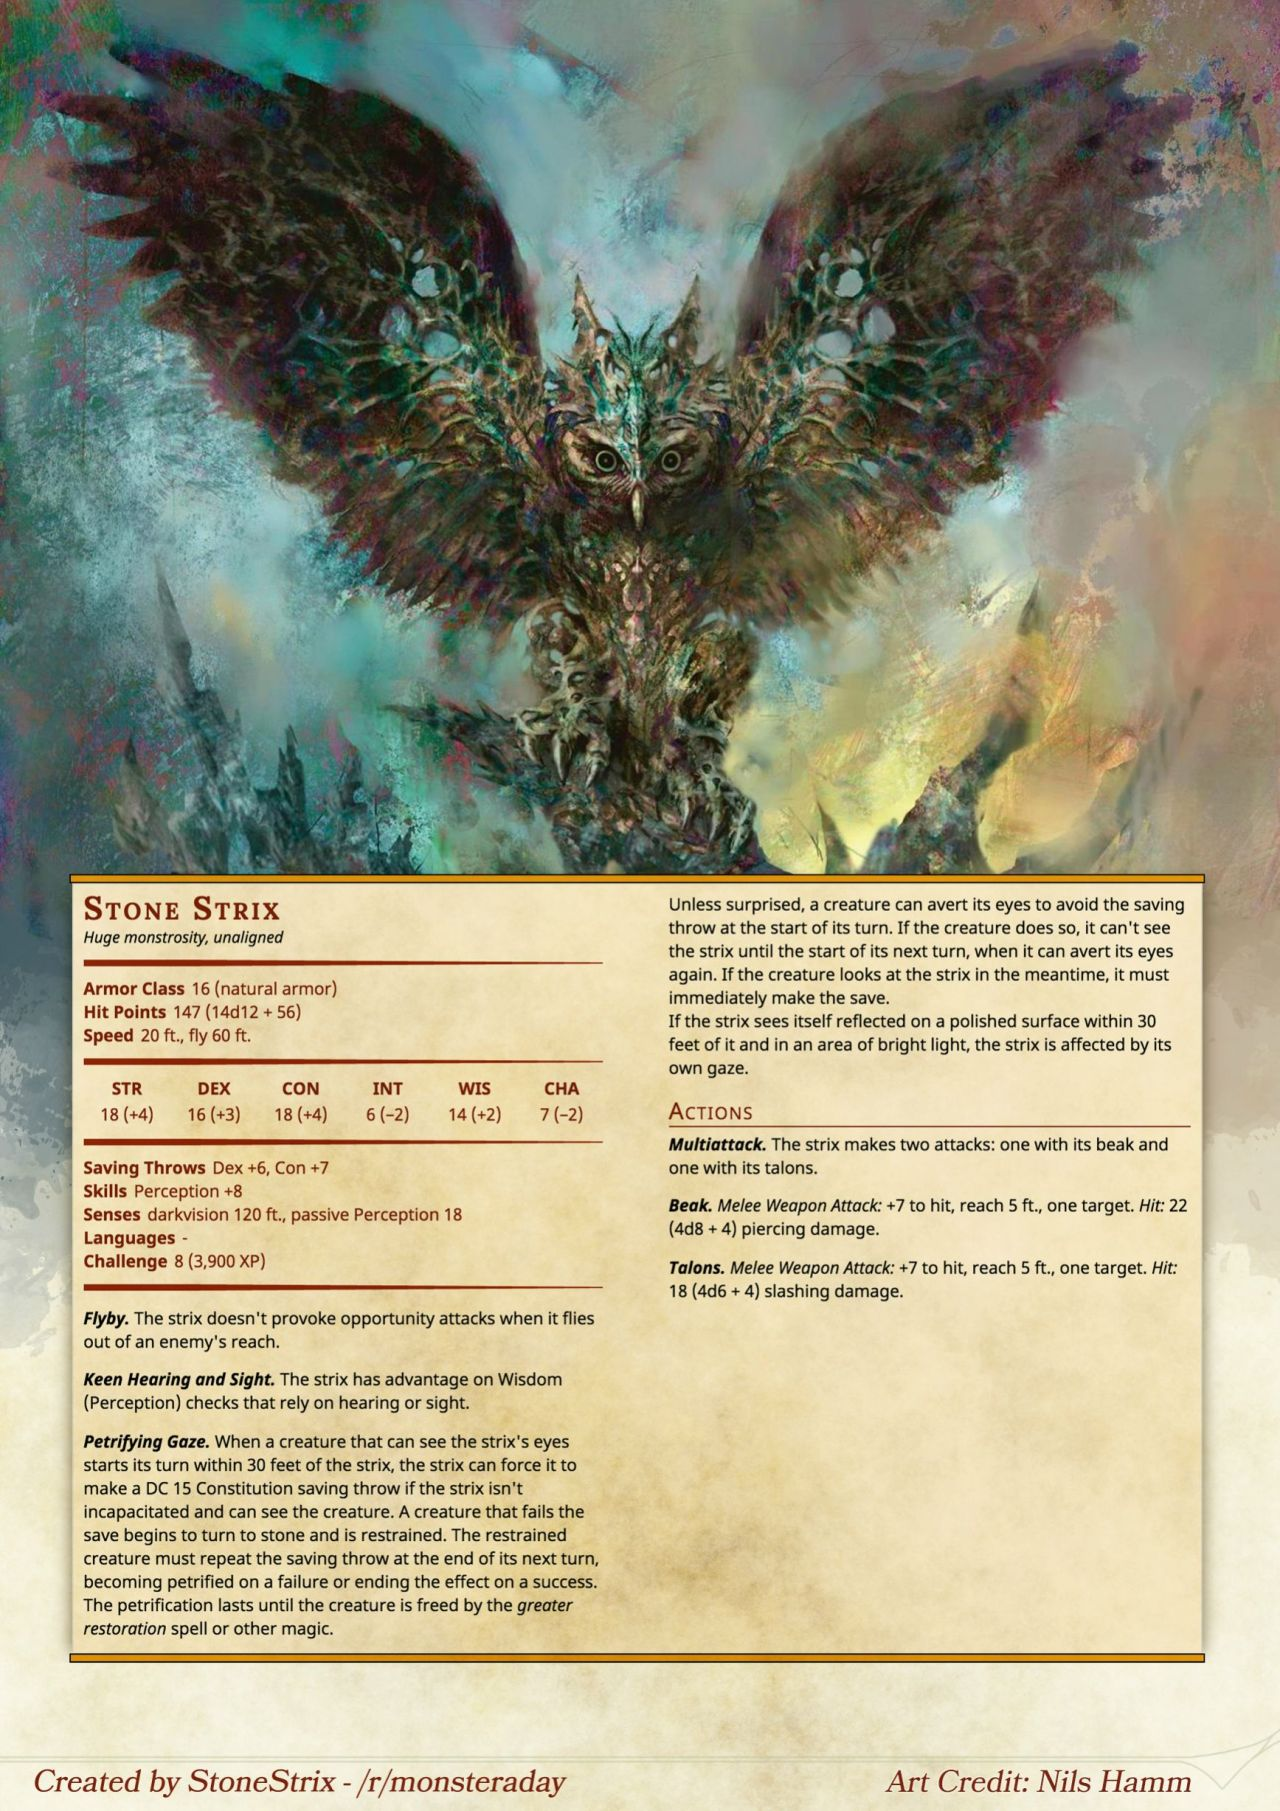 d&d e5 monster manual pdf